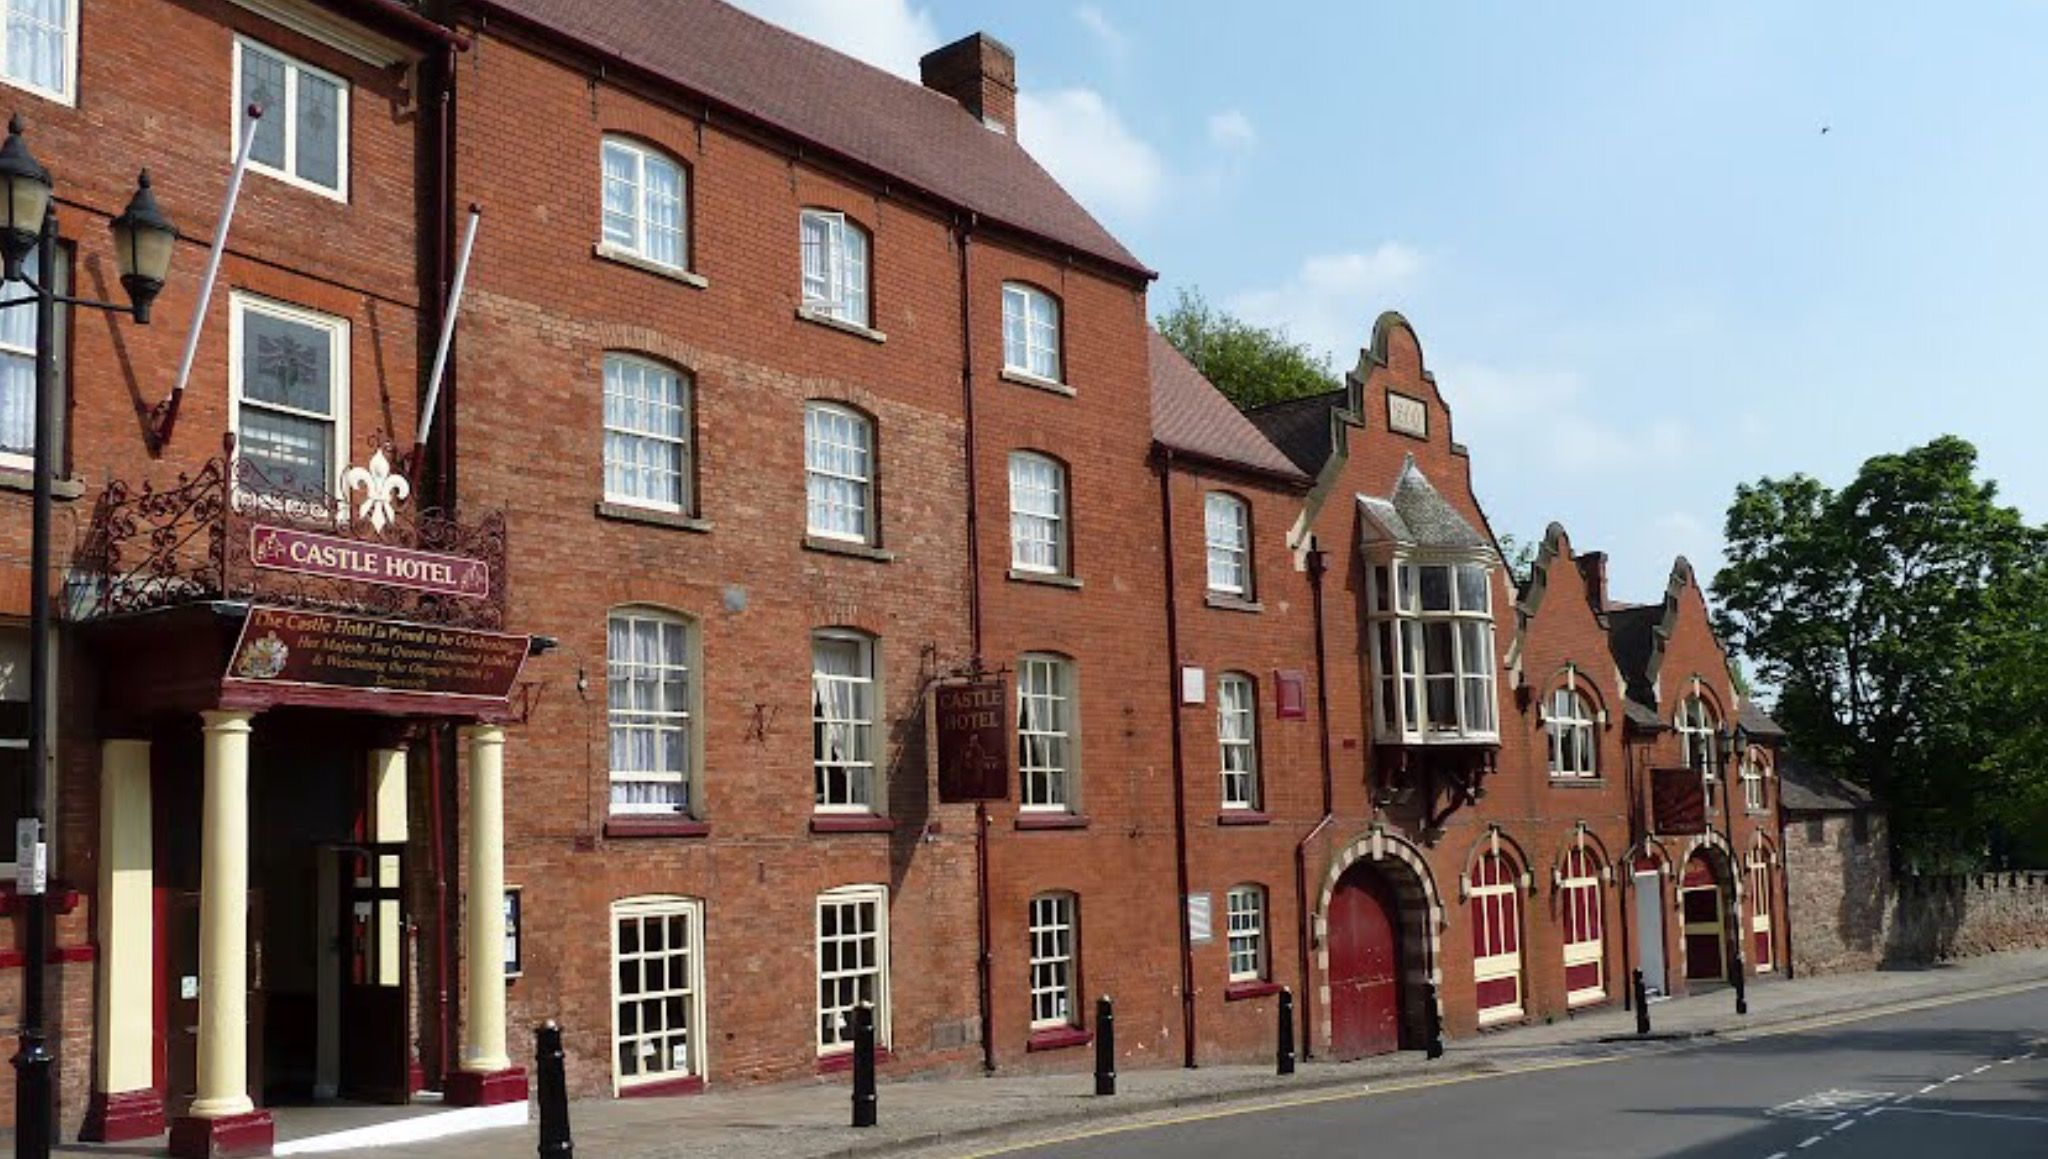 The Castle Hotel Tamworth Staffordshire England